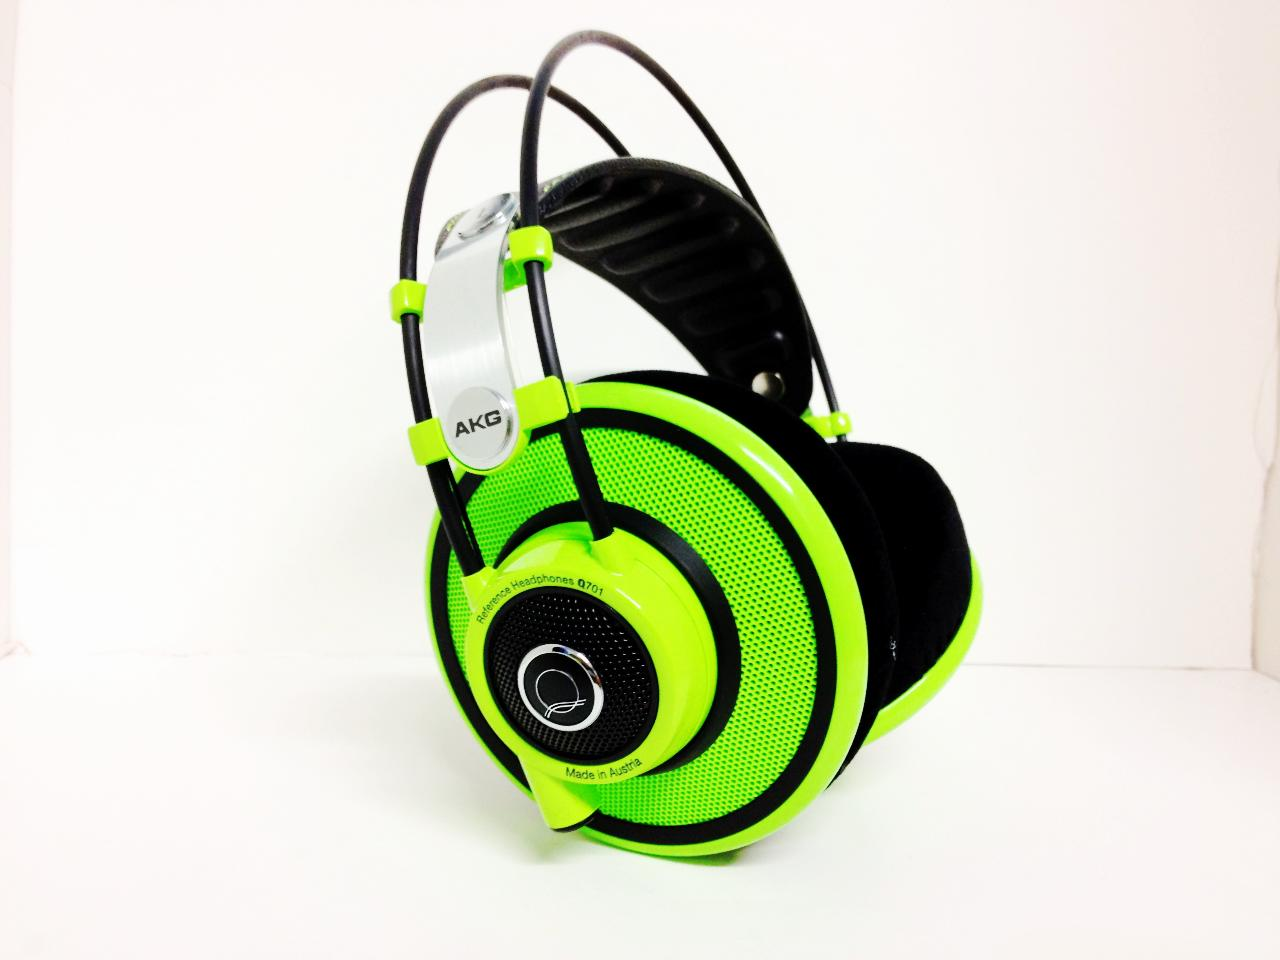 Brand new AKG Q701's I just received in Lime Green. They look and sound amazing.